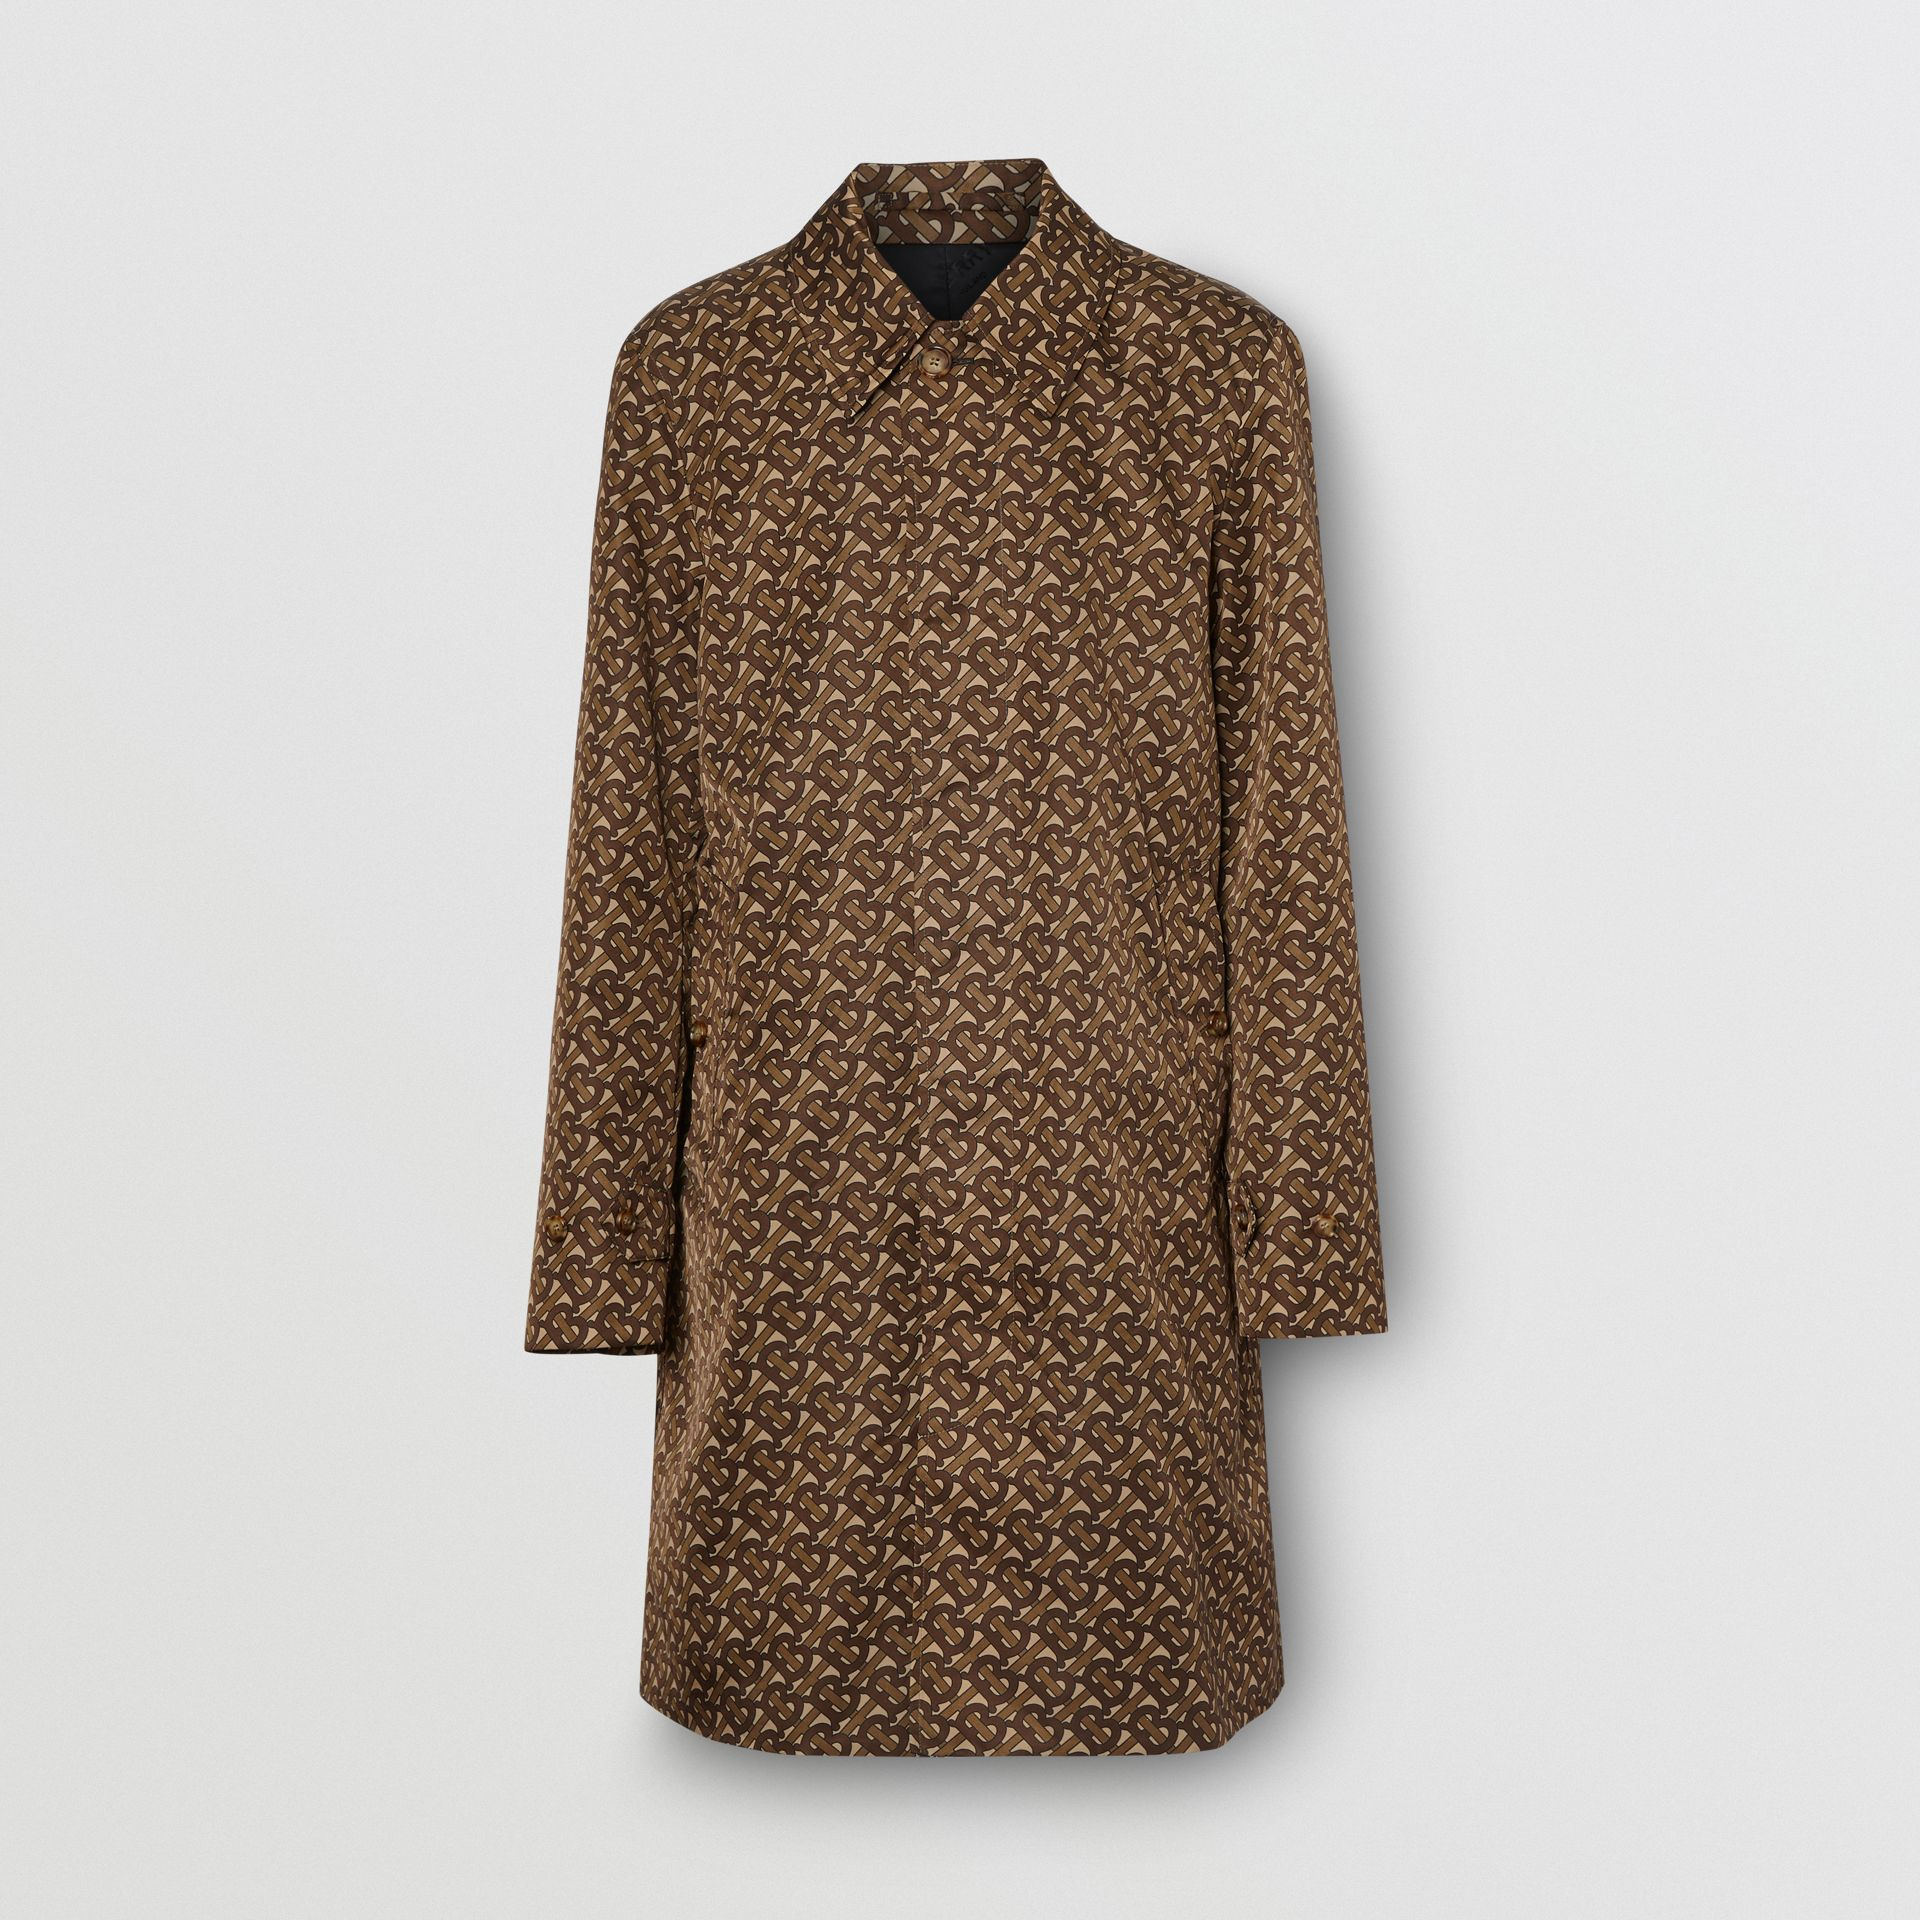 Monogram Stripe Print Nylon Car Coat in Bridle Brown - Men | Burberry - gallery image 3